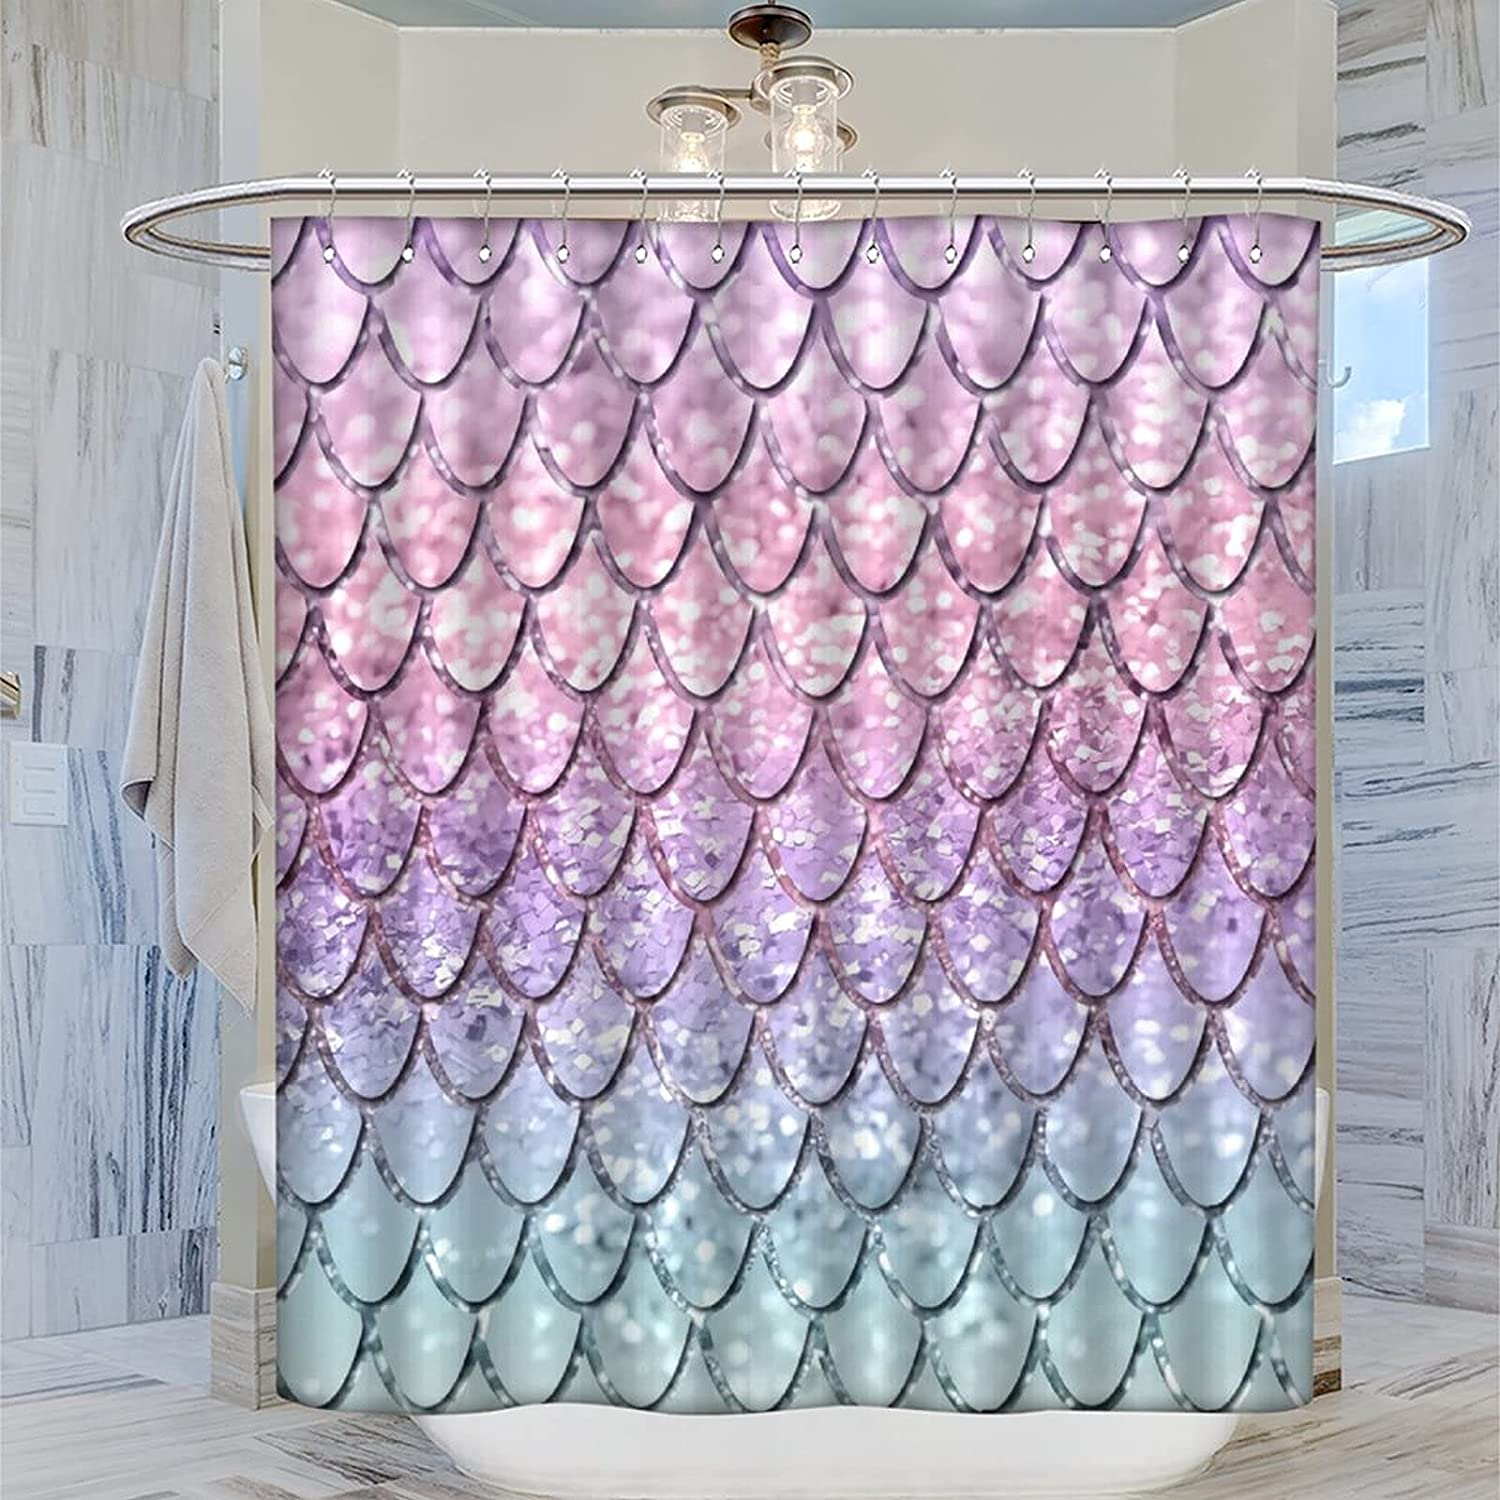 Picture Fabric Bathroom Curtain Large special Surprise price price Mermaid Shower Cu Glitter Scales